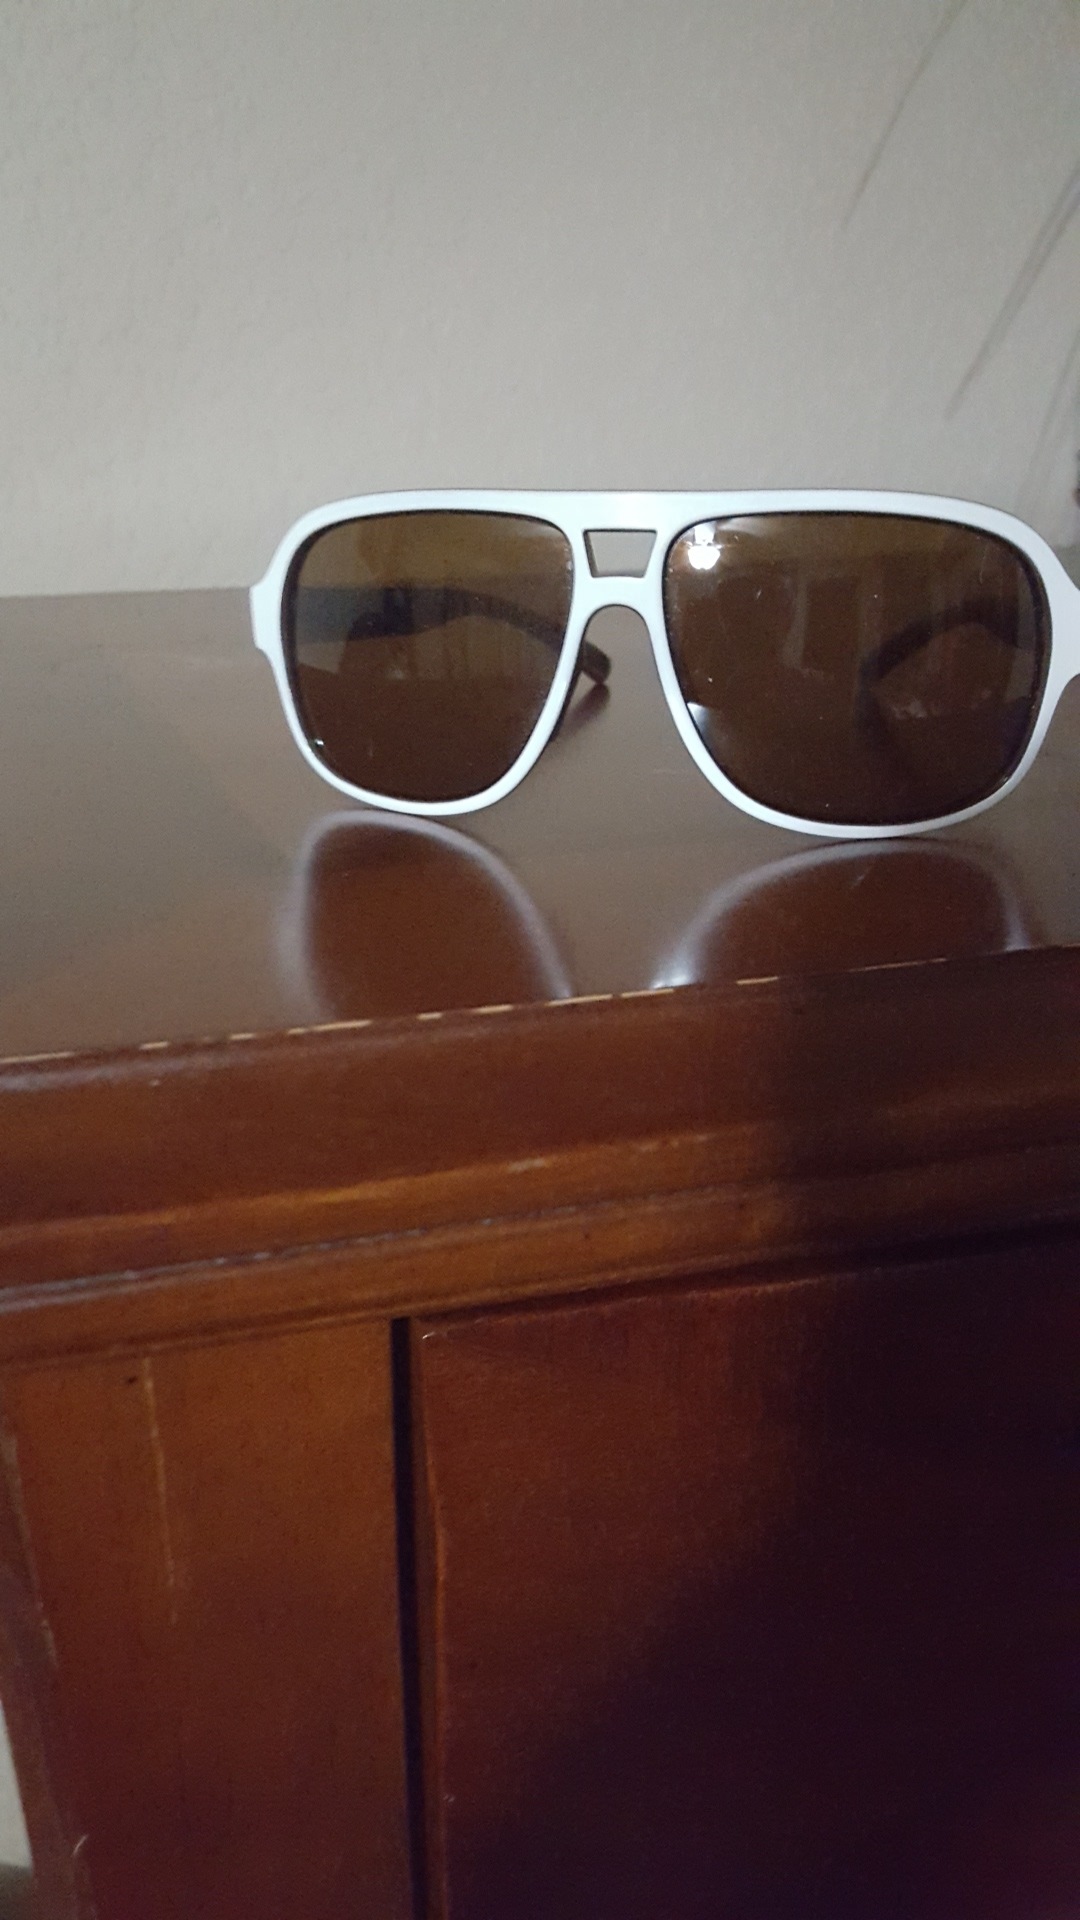 Ryders Eyewear Pint White With Brown R579-003 Brown Lens Sunglasses